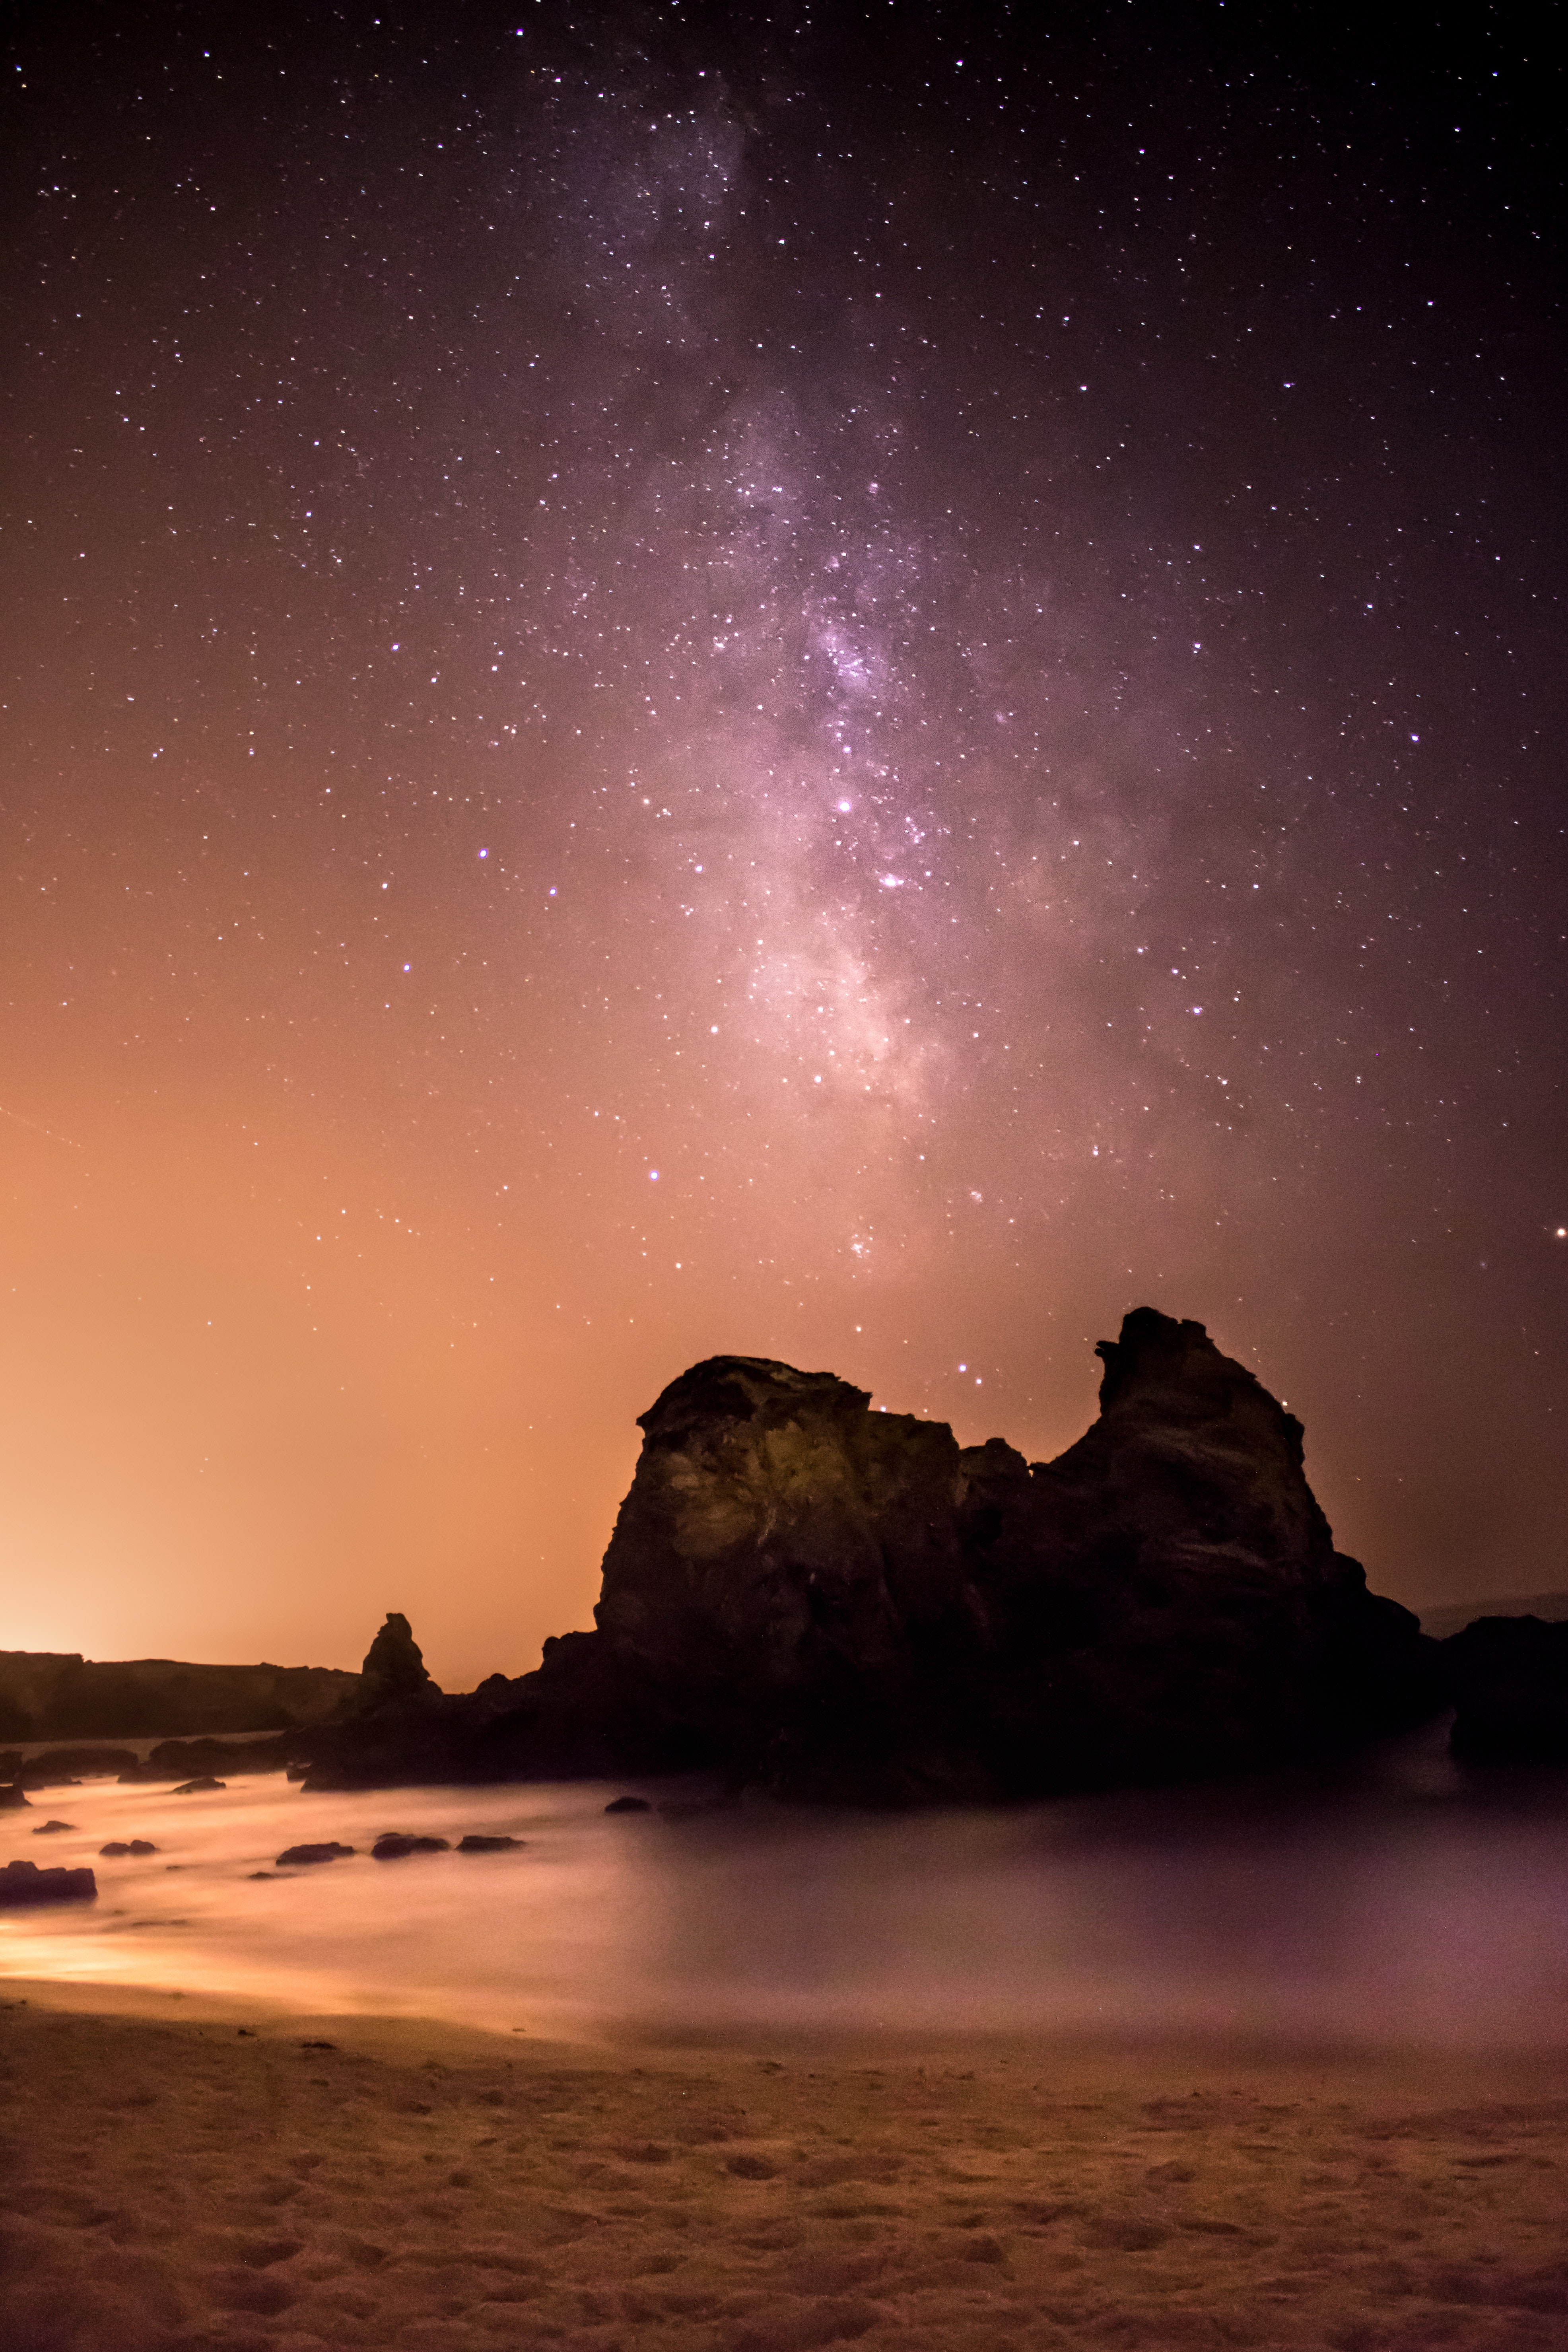 rock formation surrounded by water under black and white milky way